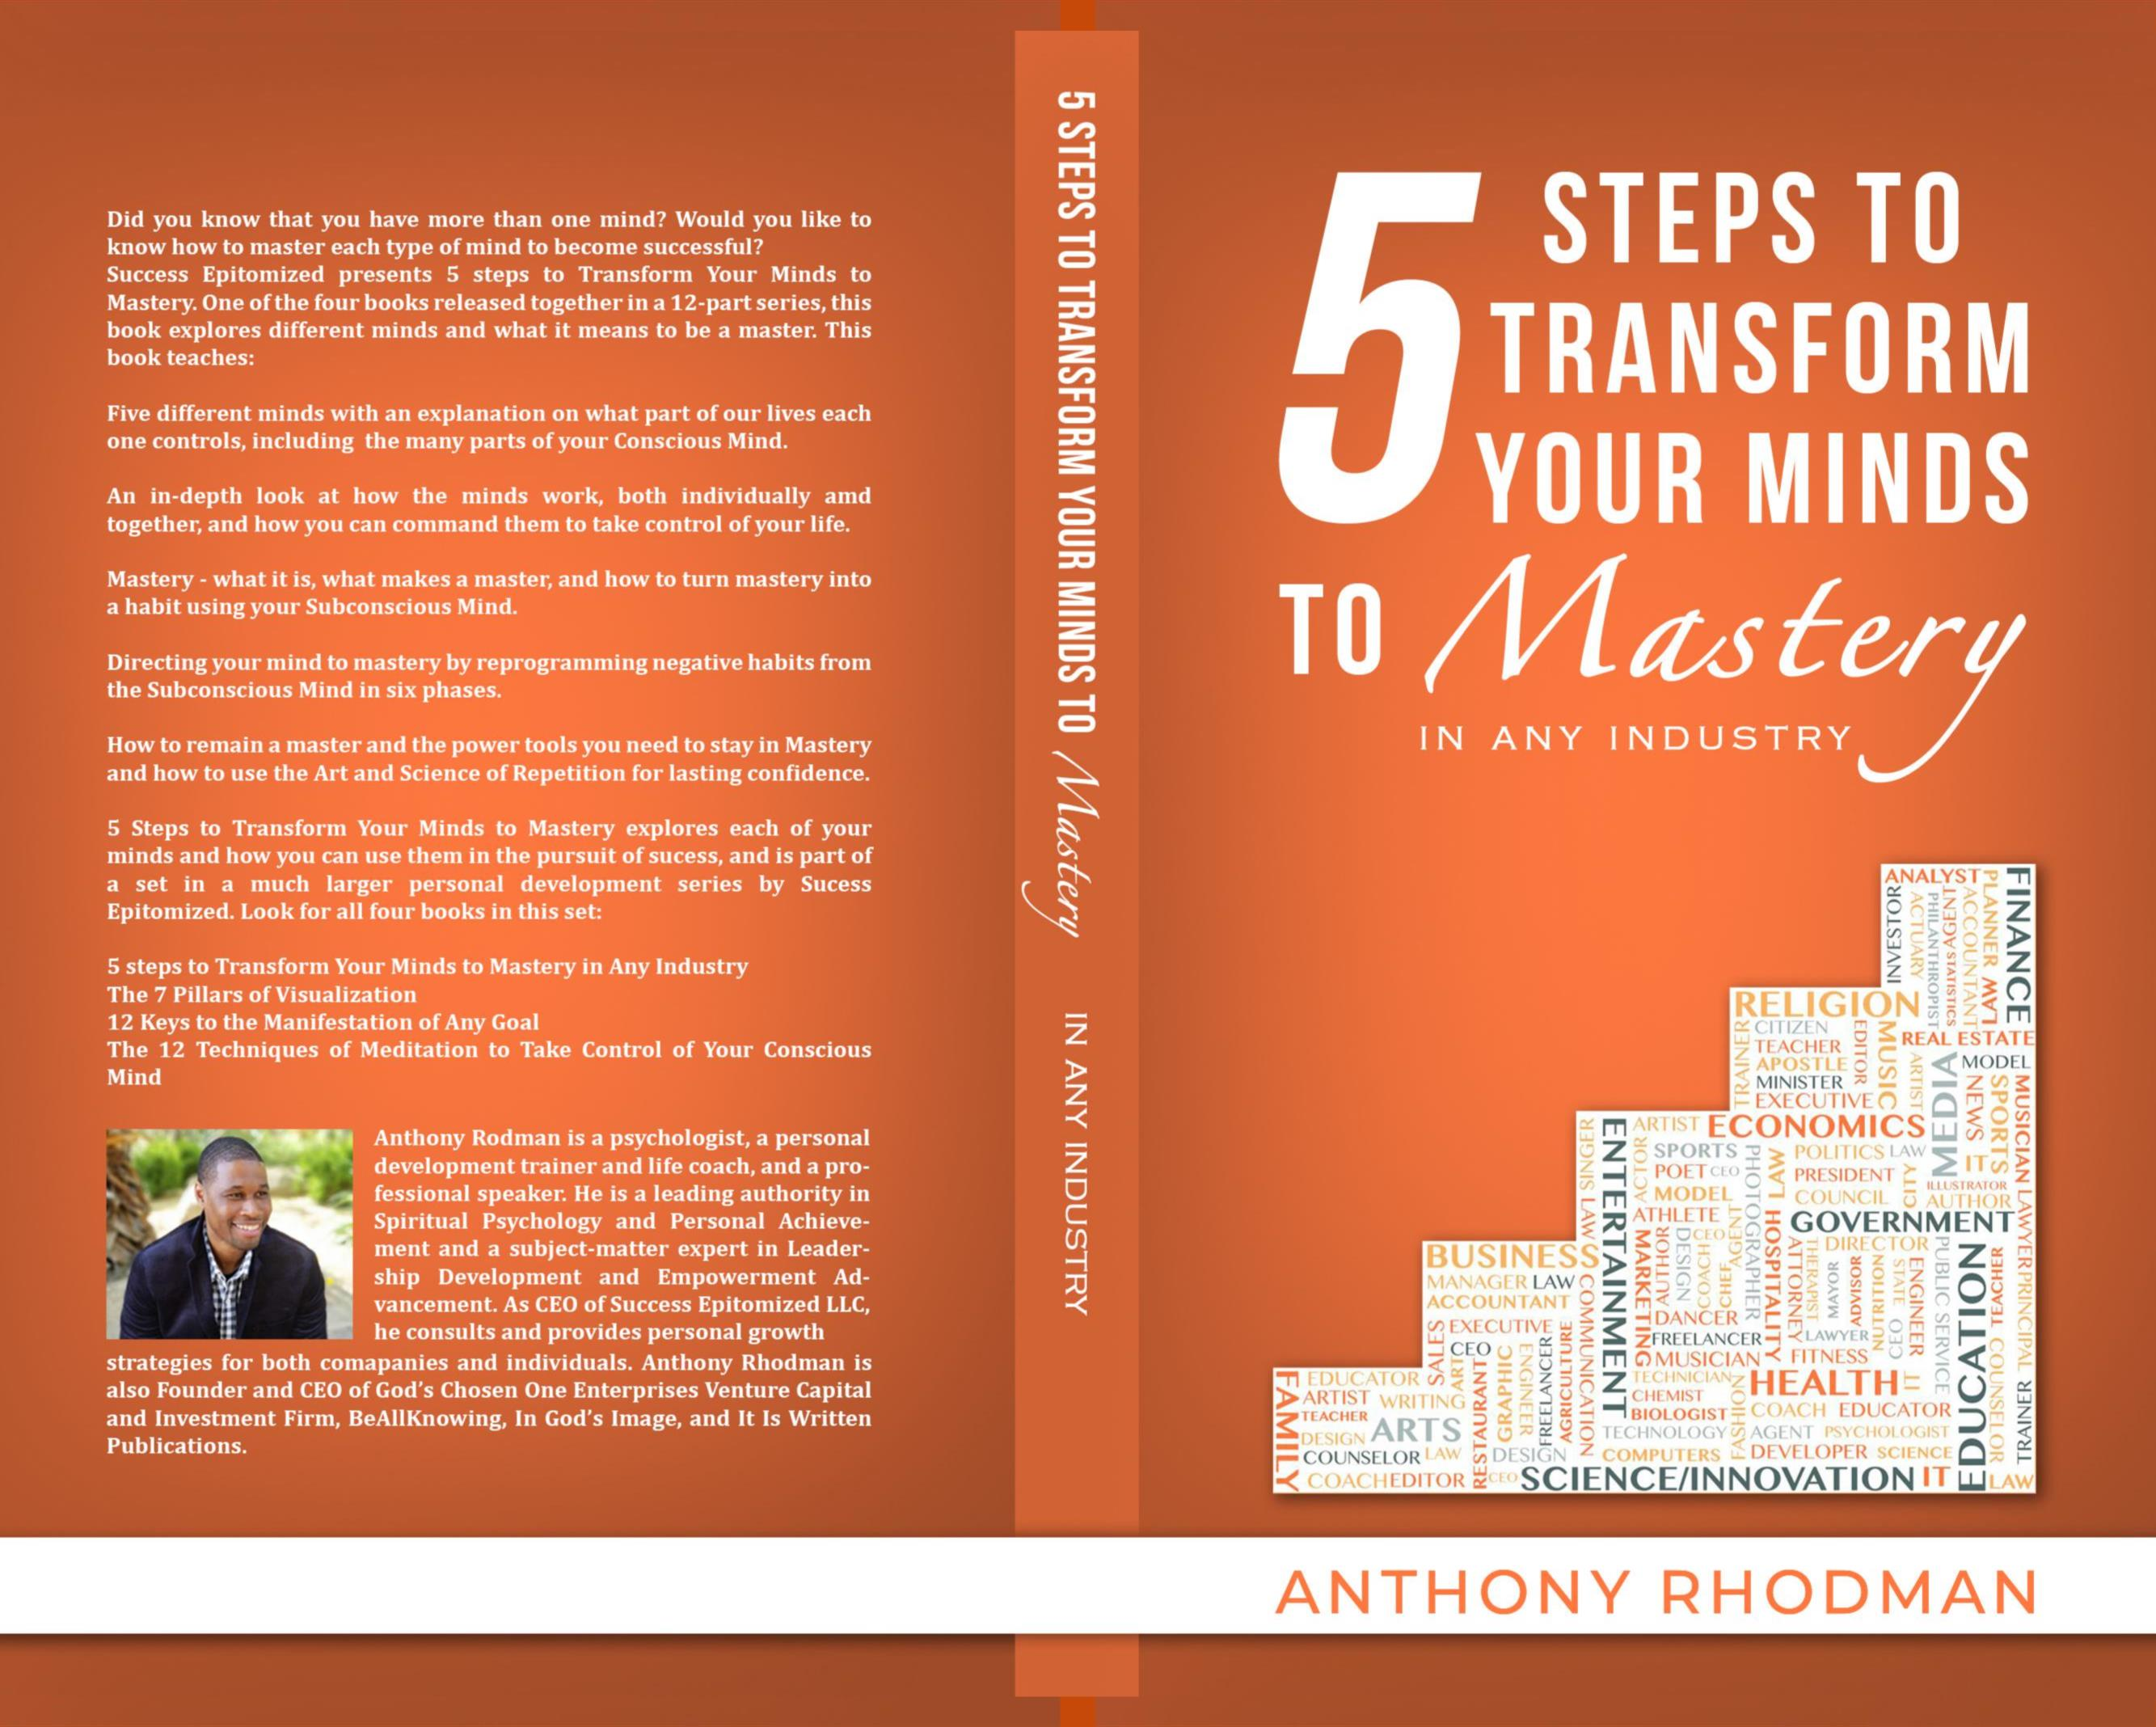 5 Steps to Transform Your Mind to Mastery in Any Industry cover image